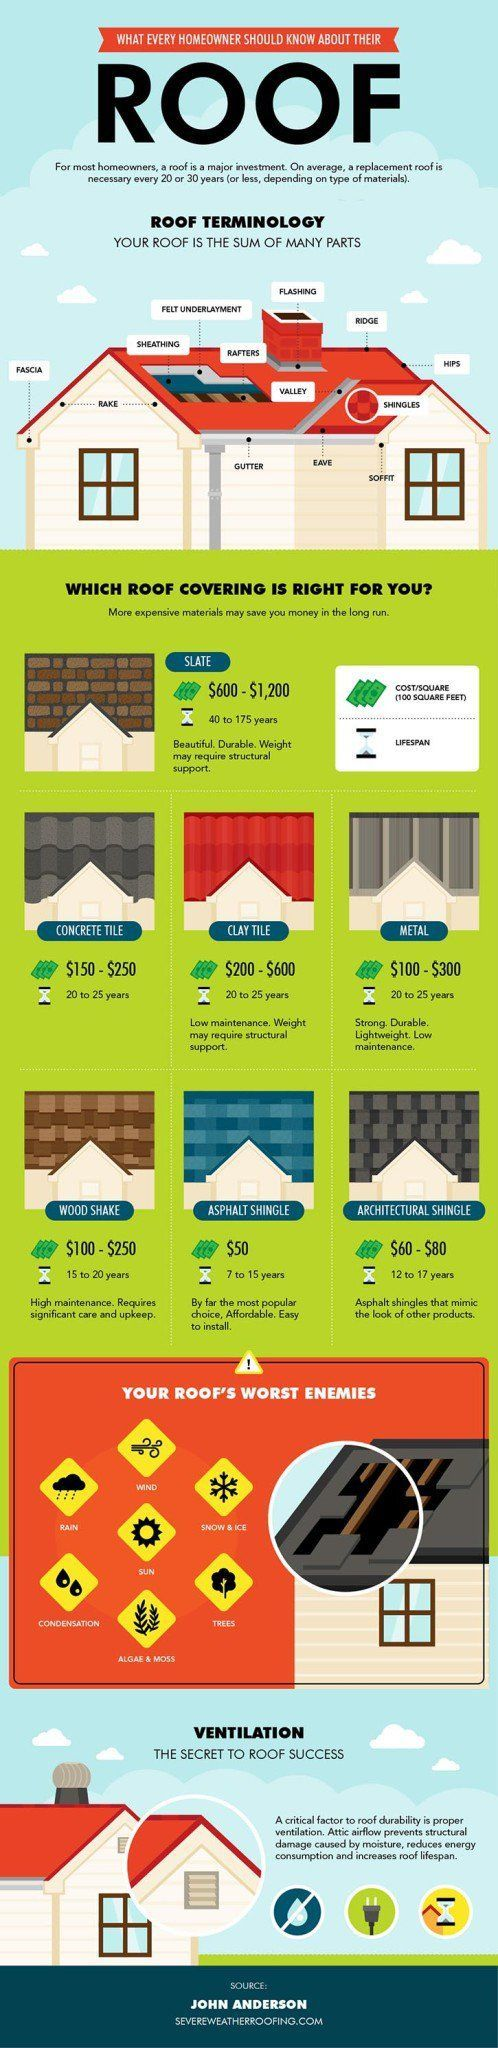 DIY Roof Repair |What Homeowners Need to Know About Their Roof [INFOGRAPHIC] by DIY Ready at http://diyready.com/diy-roof-repair-what-homeowners-need-to-know-about-their-roof-infographic/